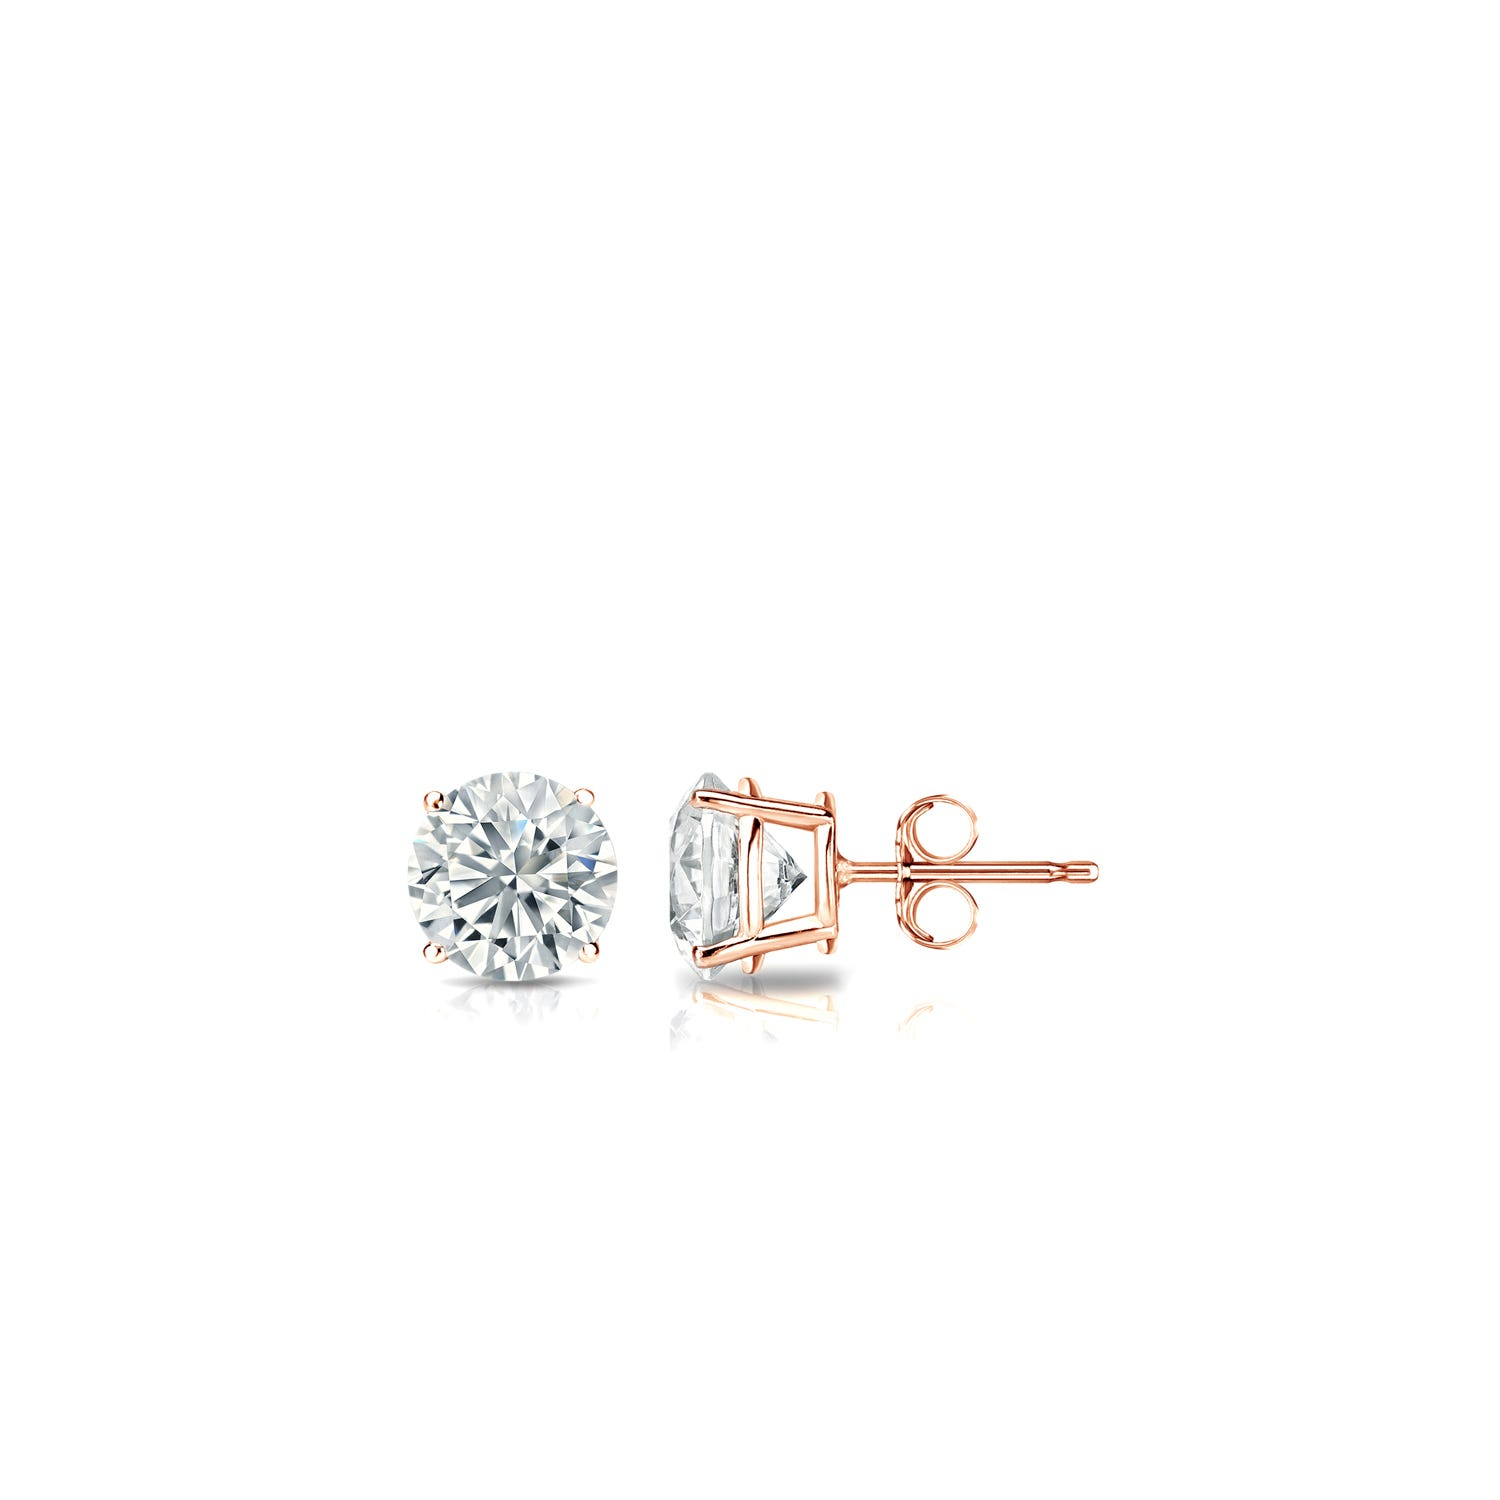 Diamond 1/10ctw. Round Solitaire Stud Earrings (I-J, SI2) 14k Rose Gold